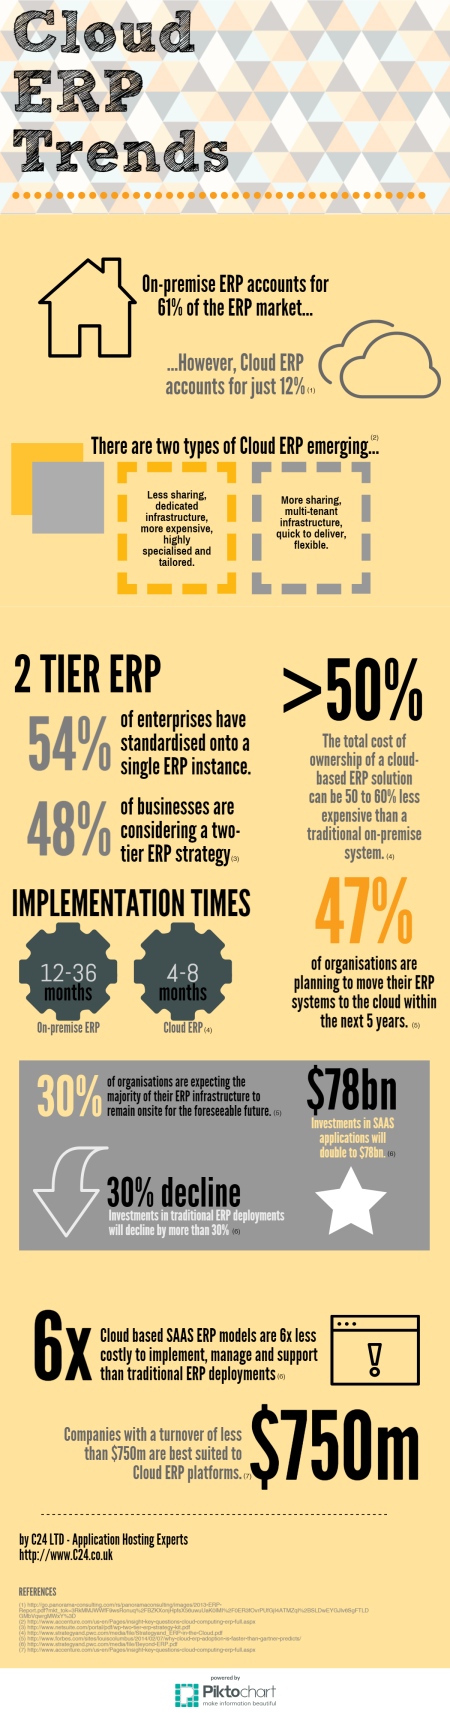 C24 ERP Infographic by C24